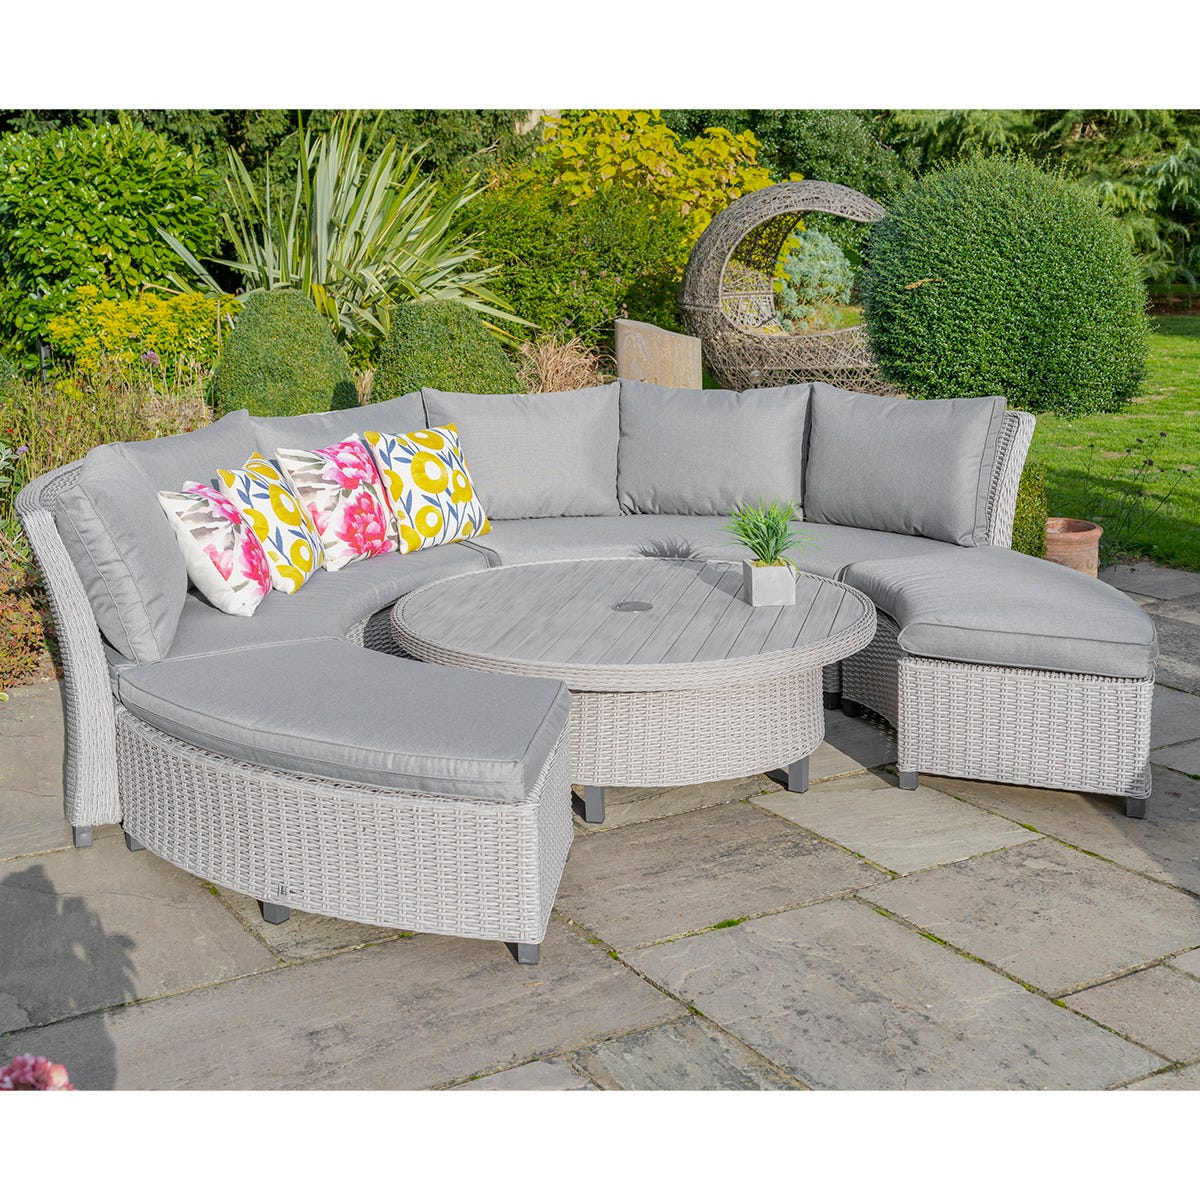 LG Outdoor Oslo Curved Modular Dining Set with Crank Adjustable Table